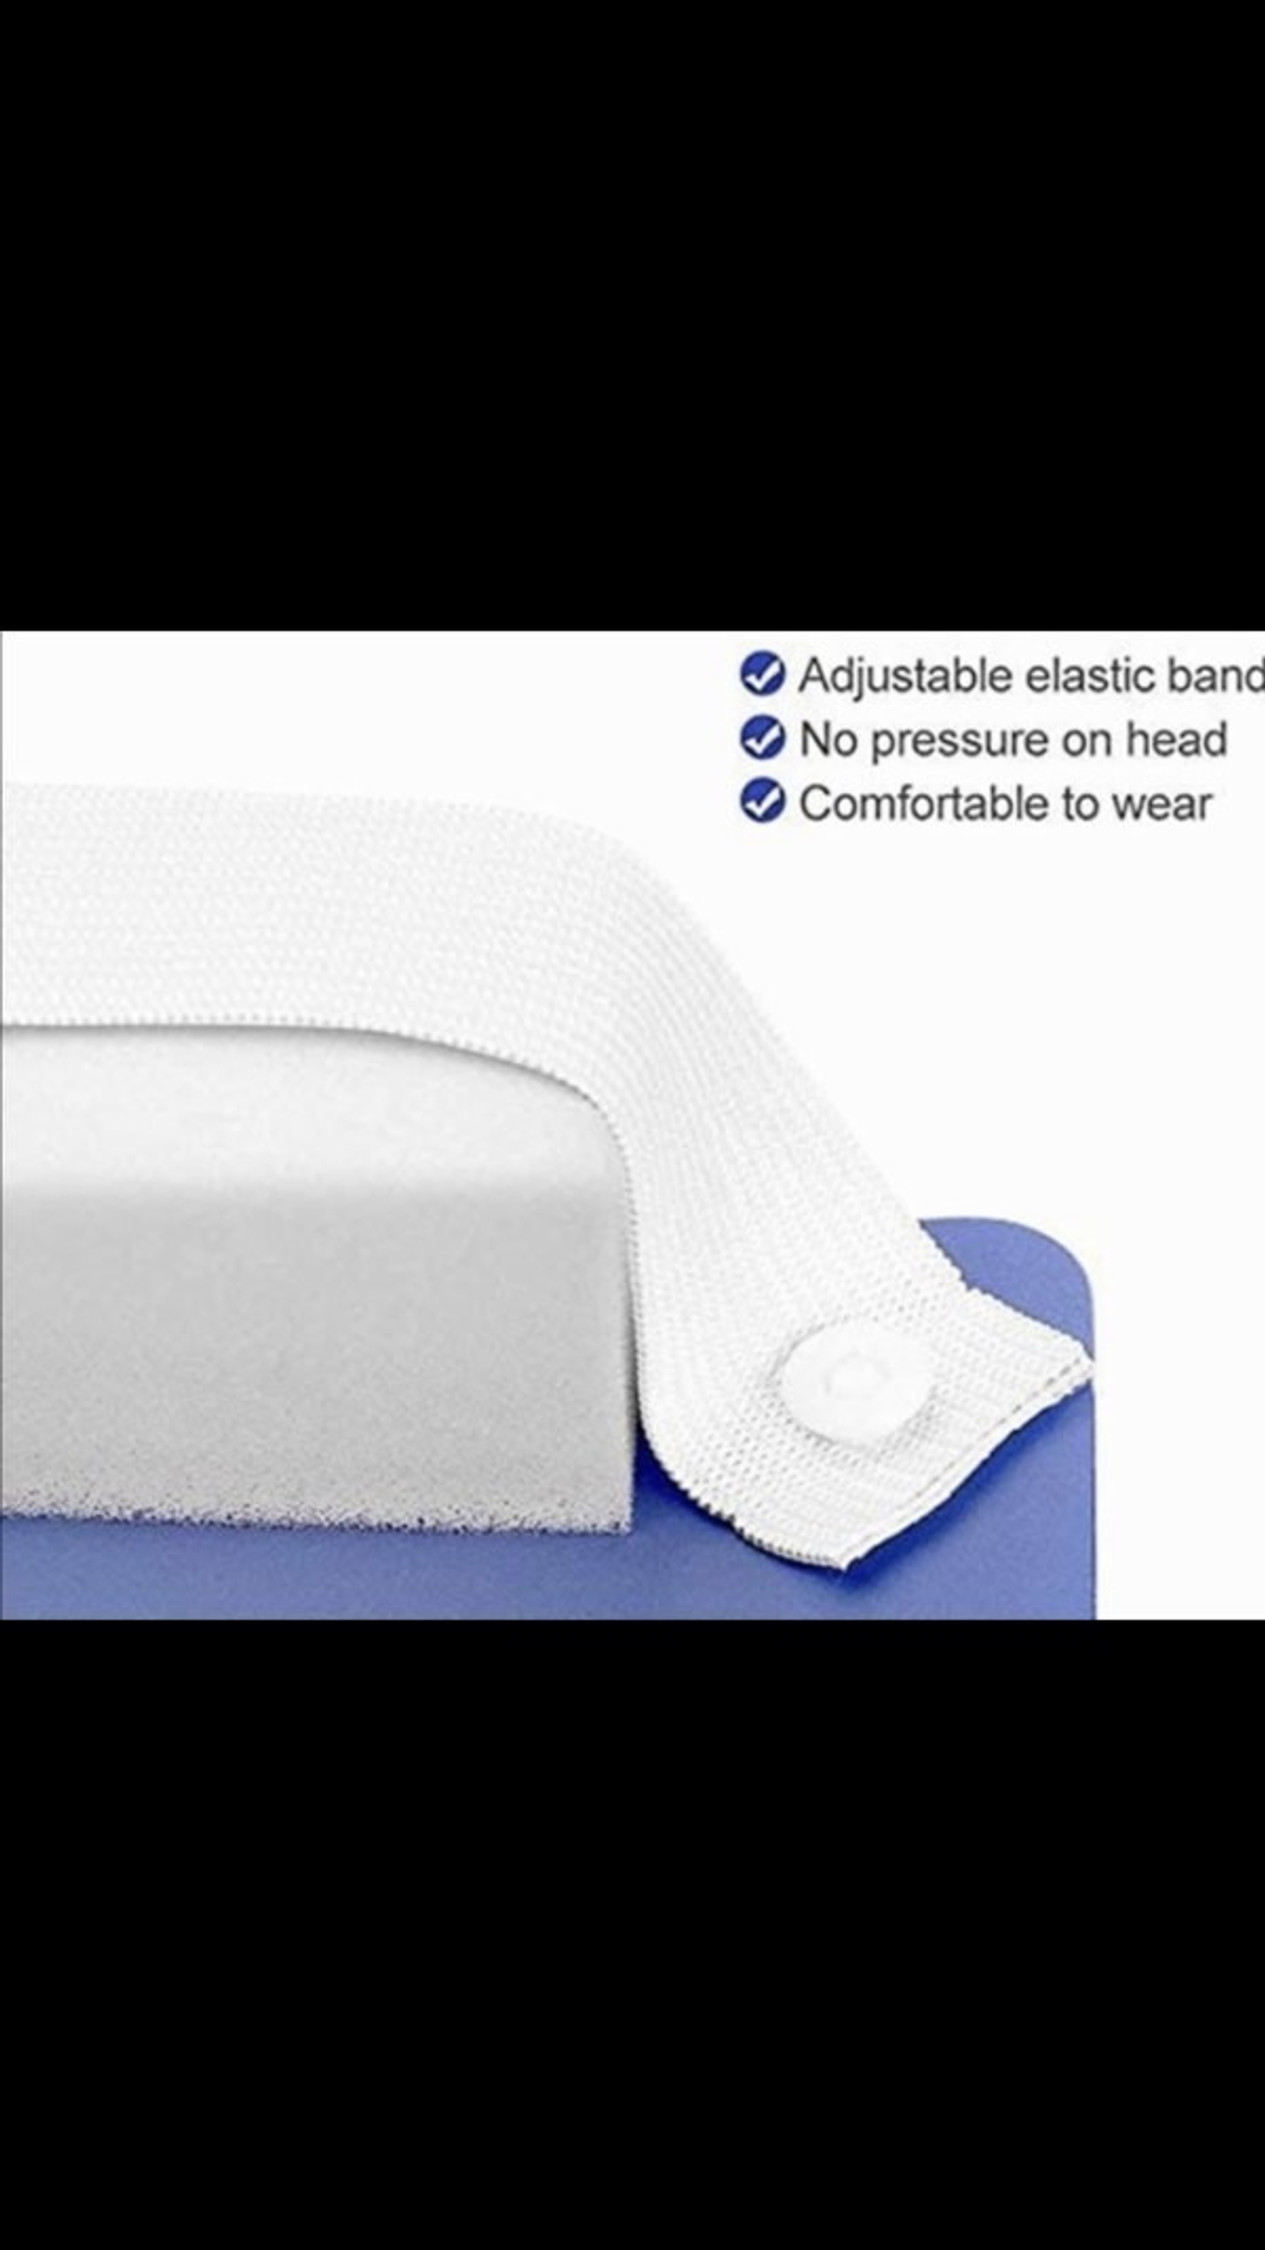 Protective Face Shields - Anti Splash Film with Elastic Band and Comfort Sponge - 5 Pack